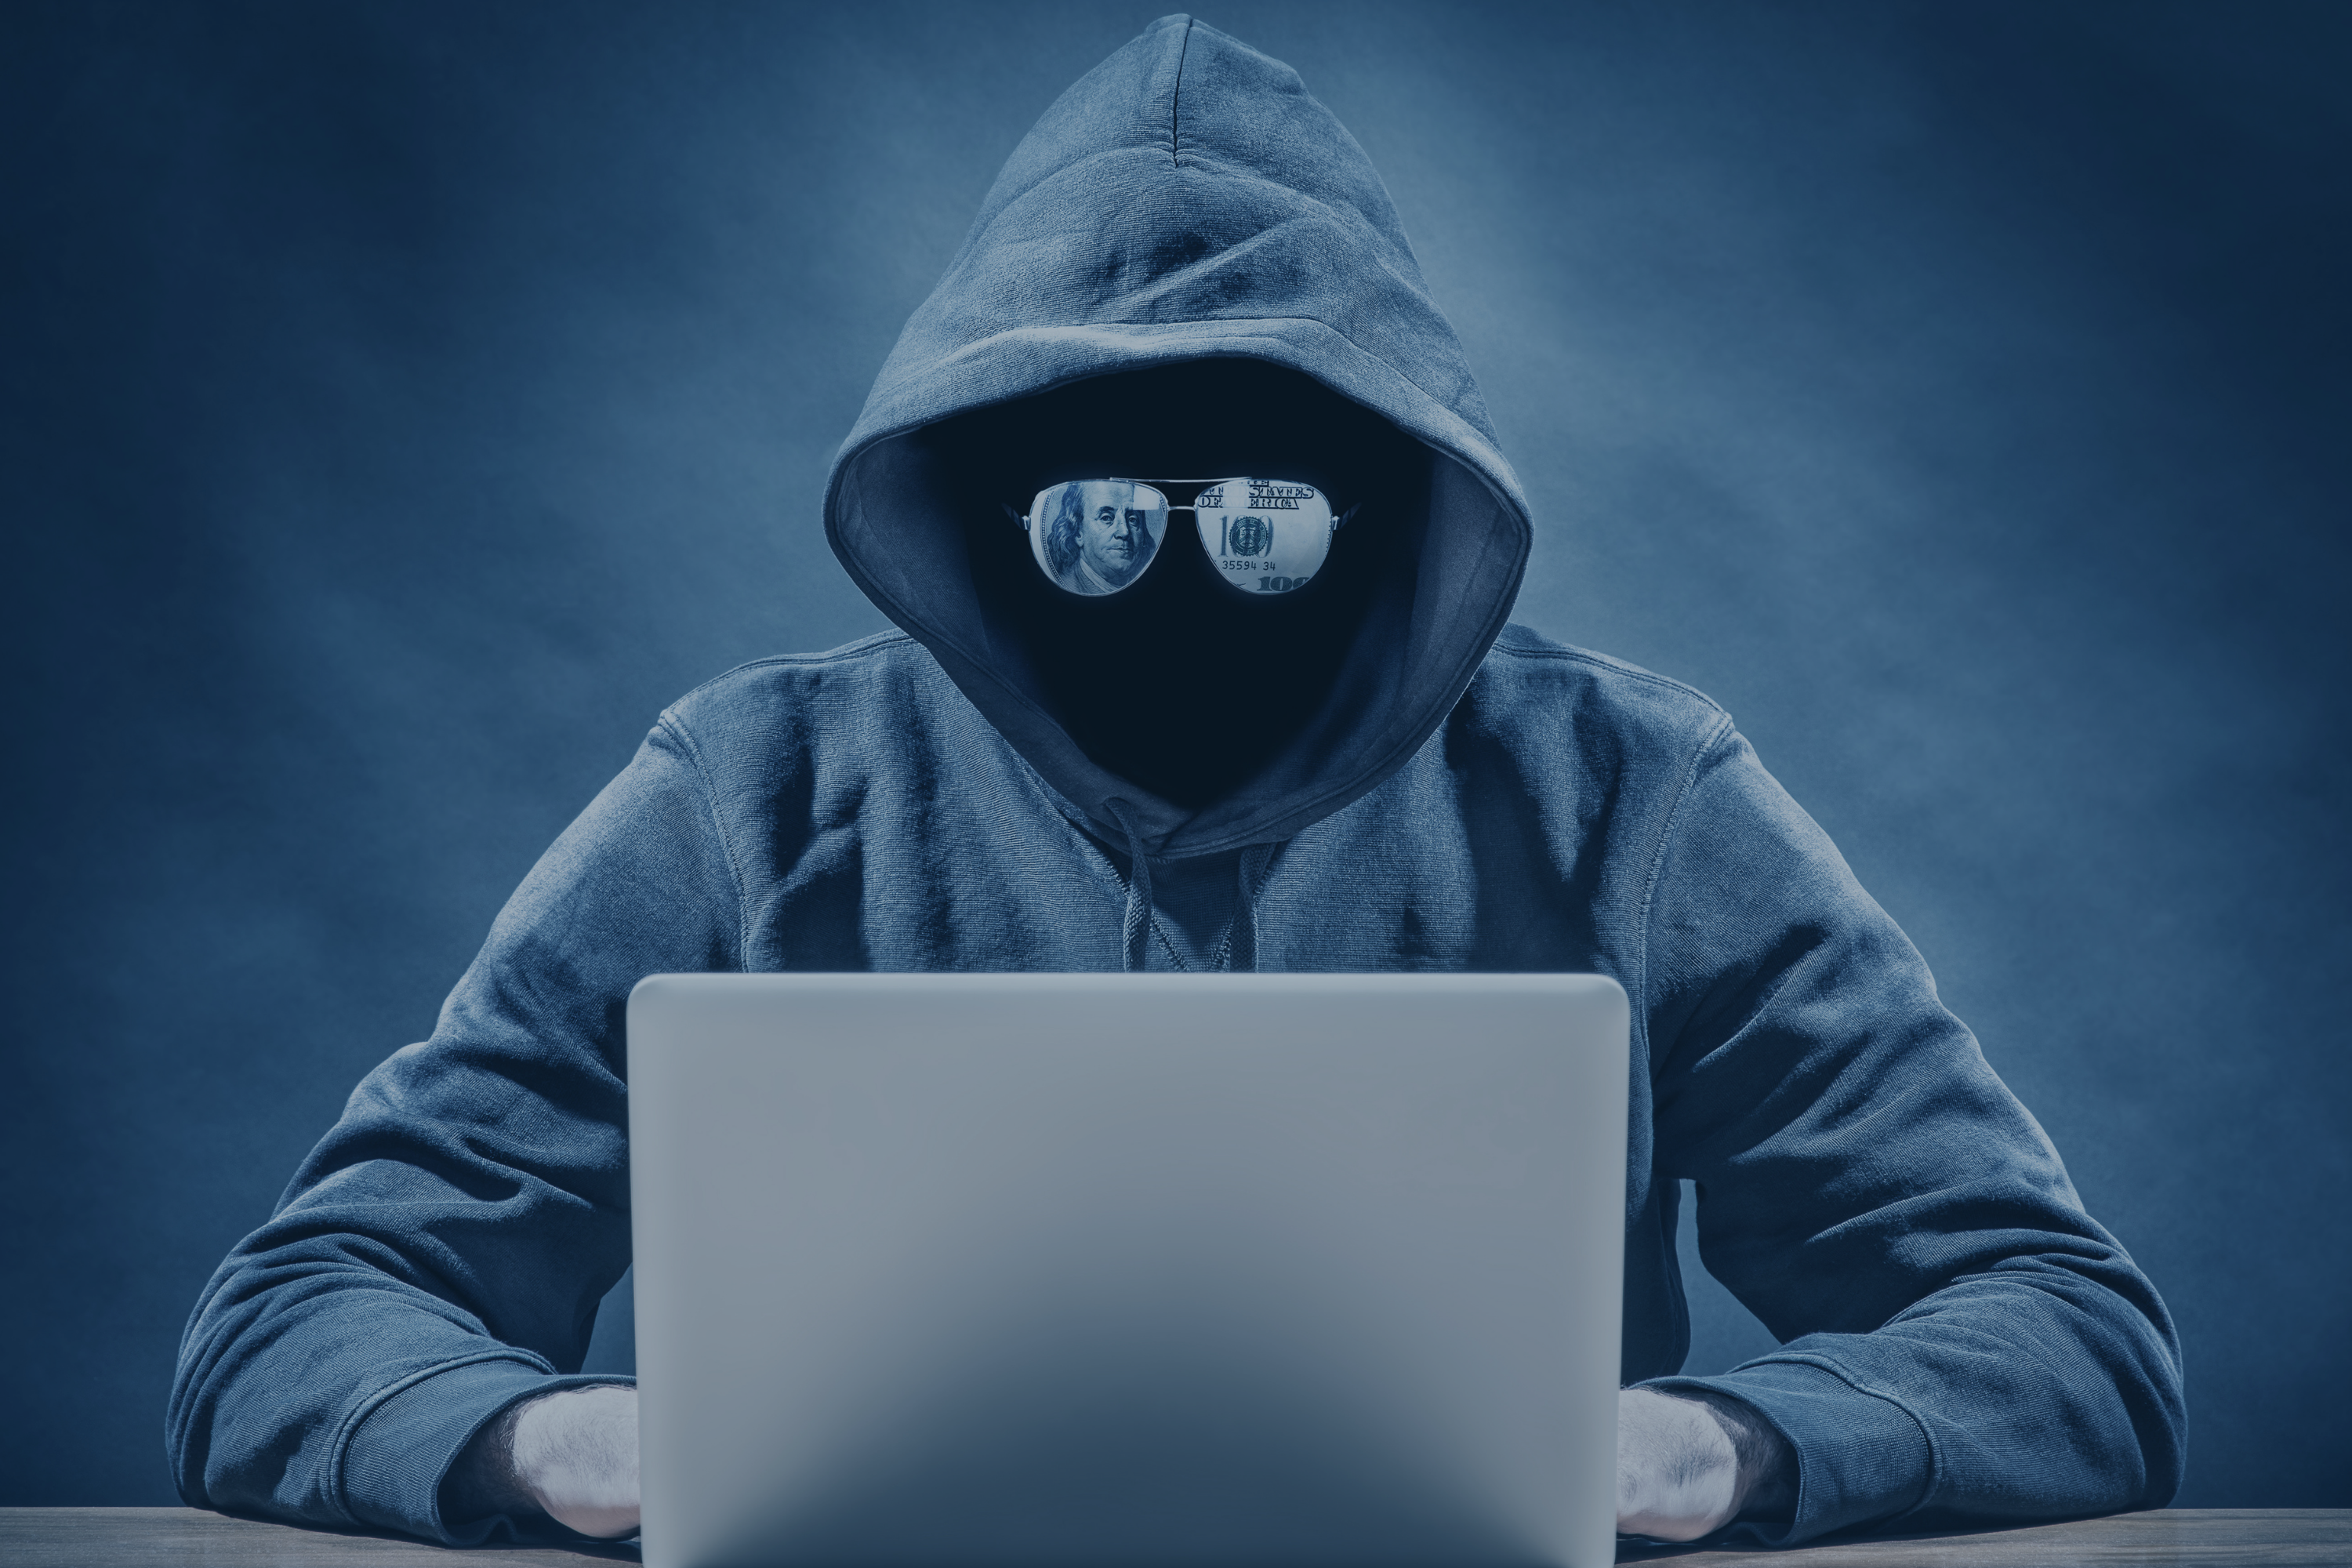 crimial-person-on-a-computer-comitting-payment-invoice-fraud